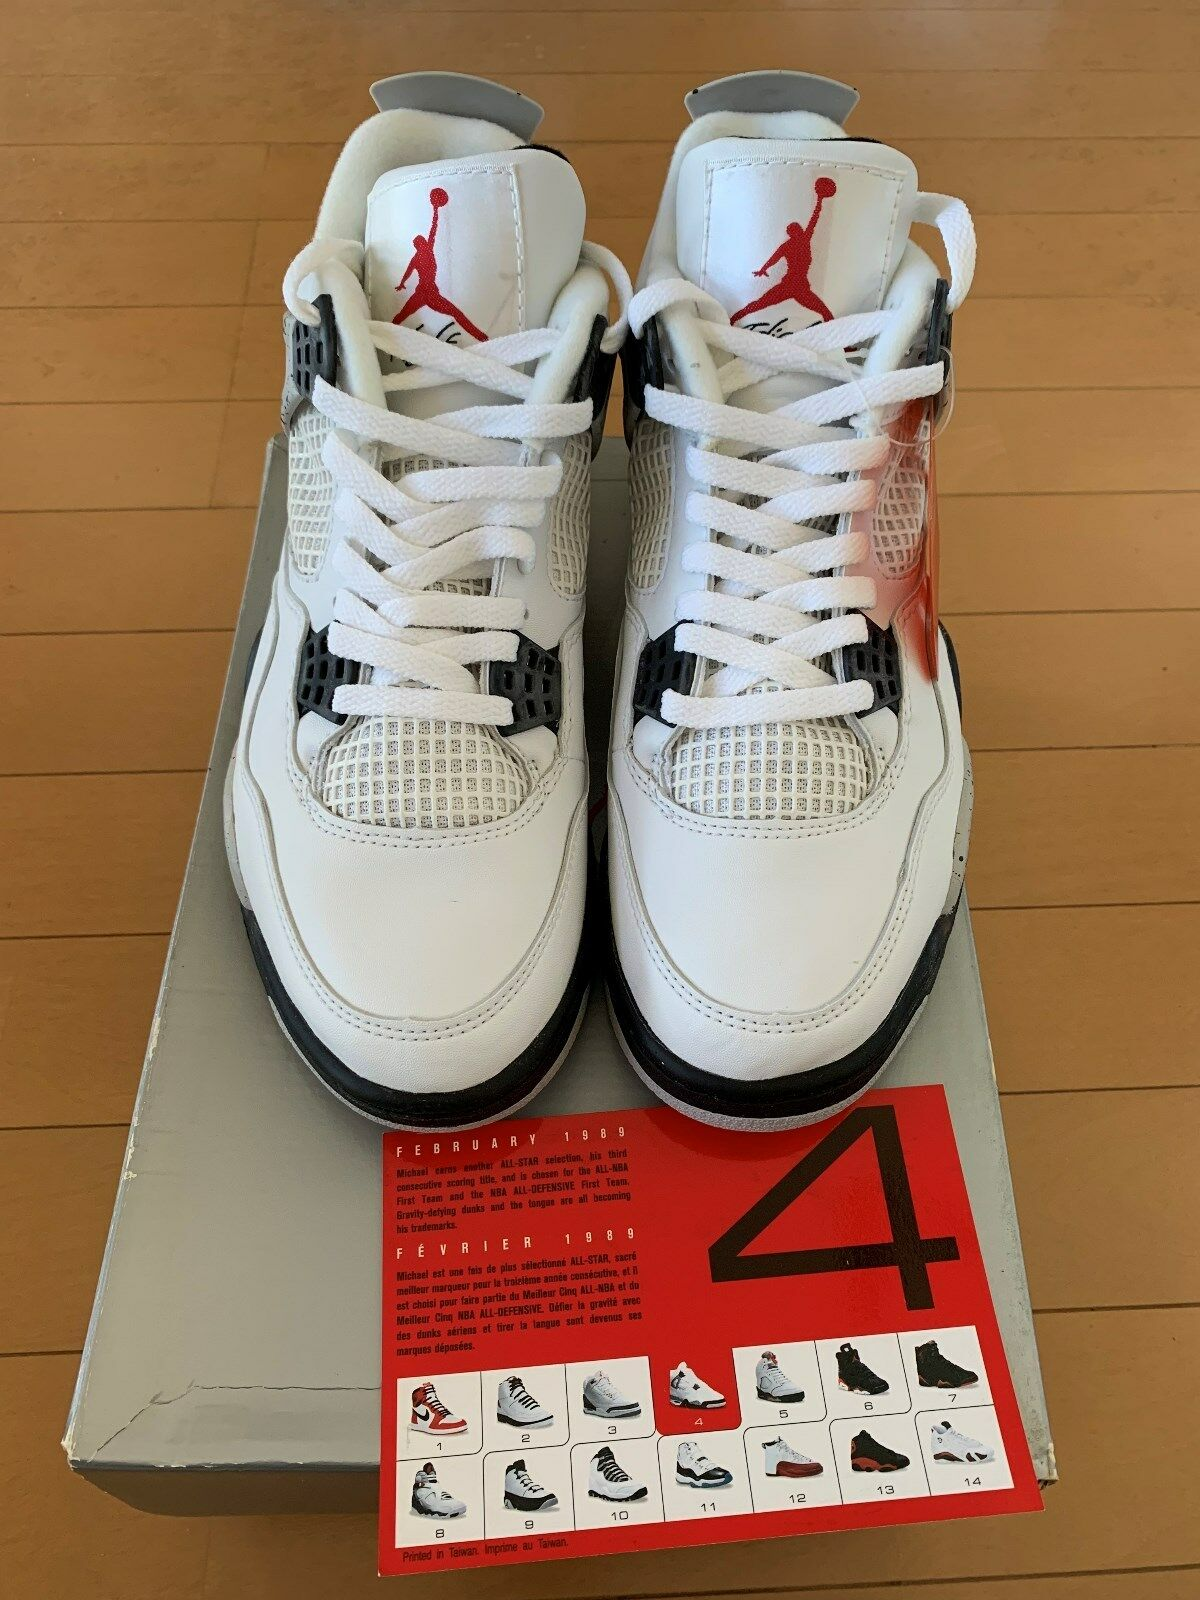 DS 1999 NIKE AIR JORDAN 4 RETRO 136013-101 WHITE CEMENT SZ8.5